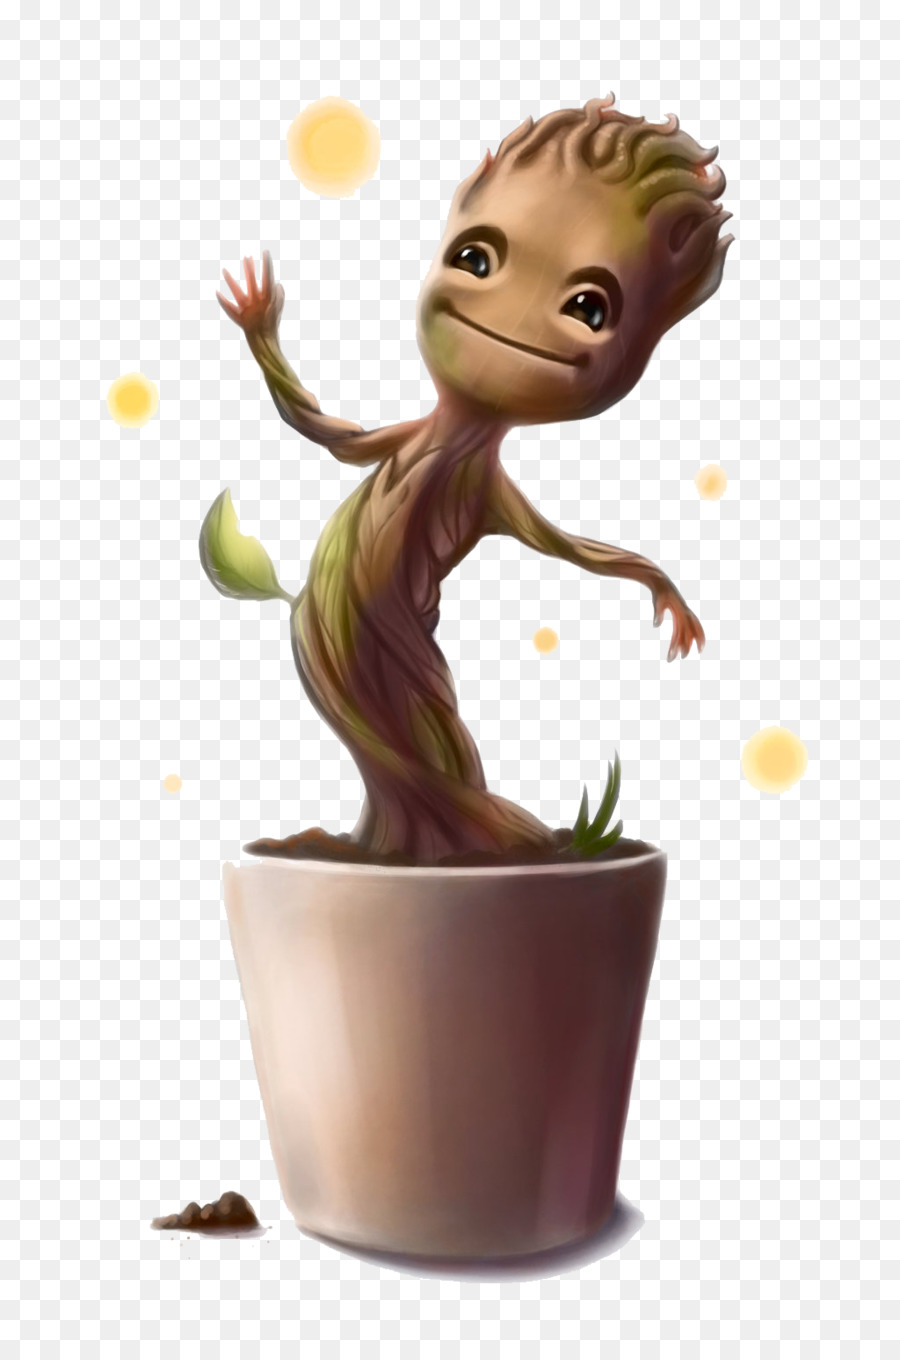 Baby groot dancing clipart graphic library library Groot Flowerpot png download - 1024*1536 - Free Transparent Groot ... graphic library library